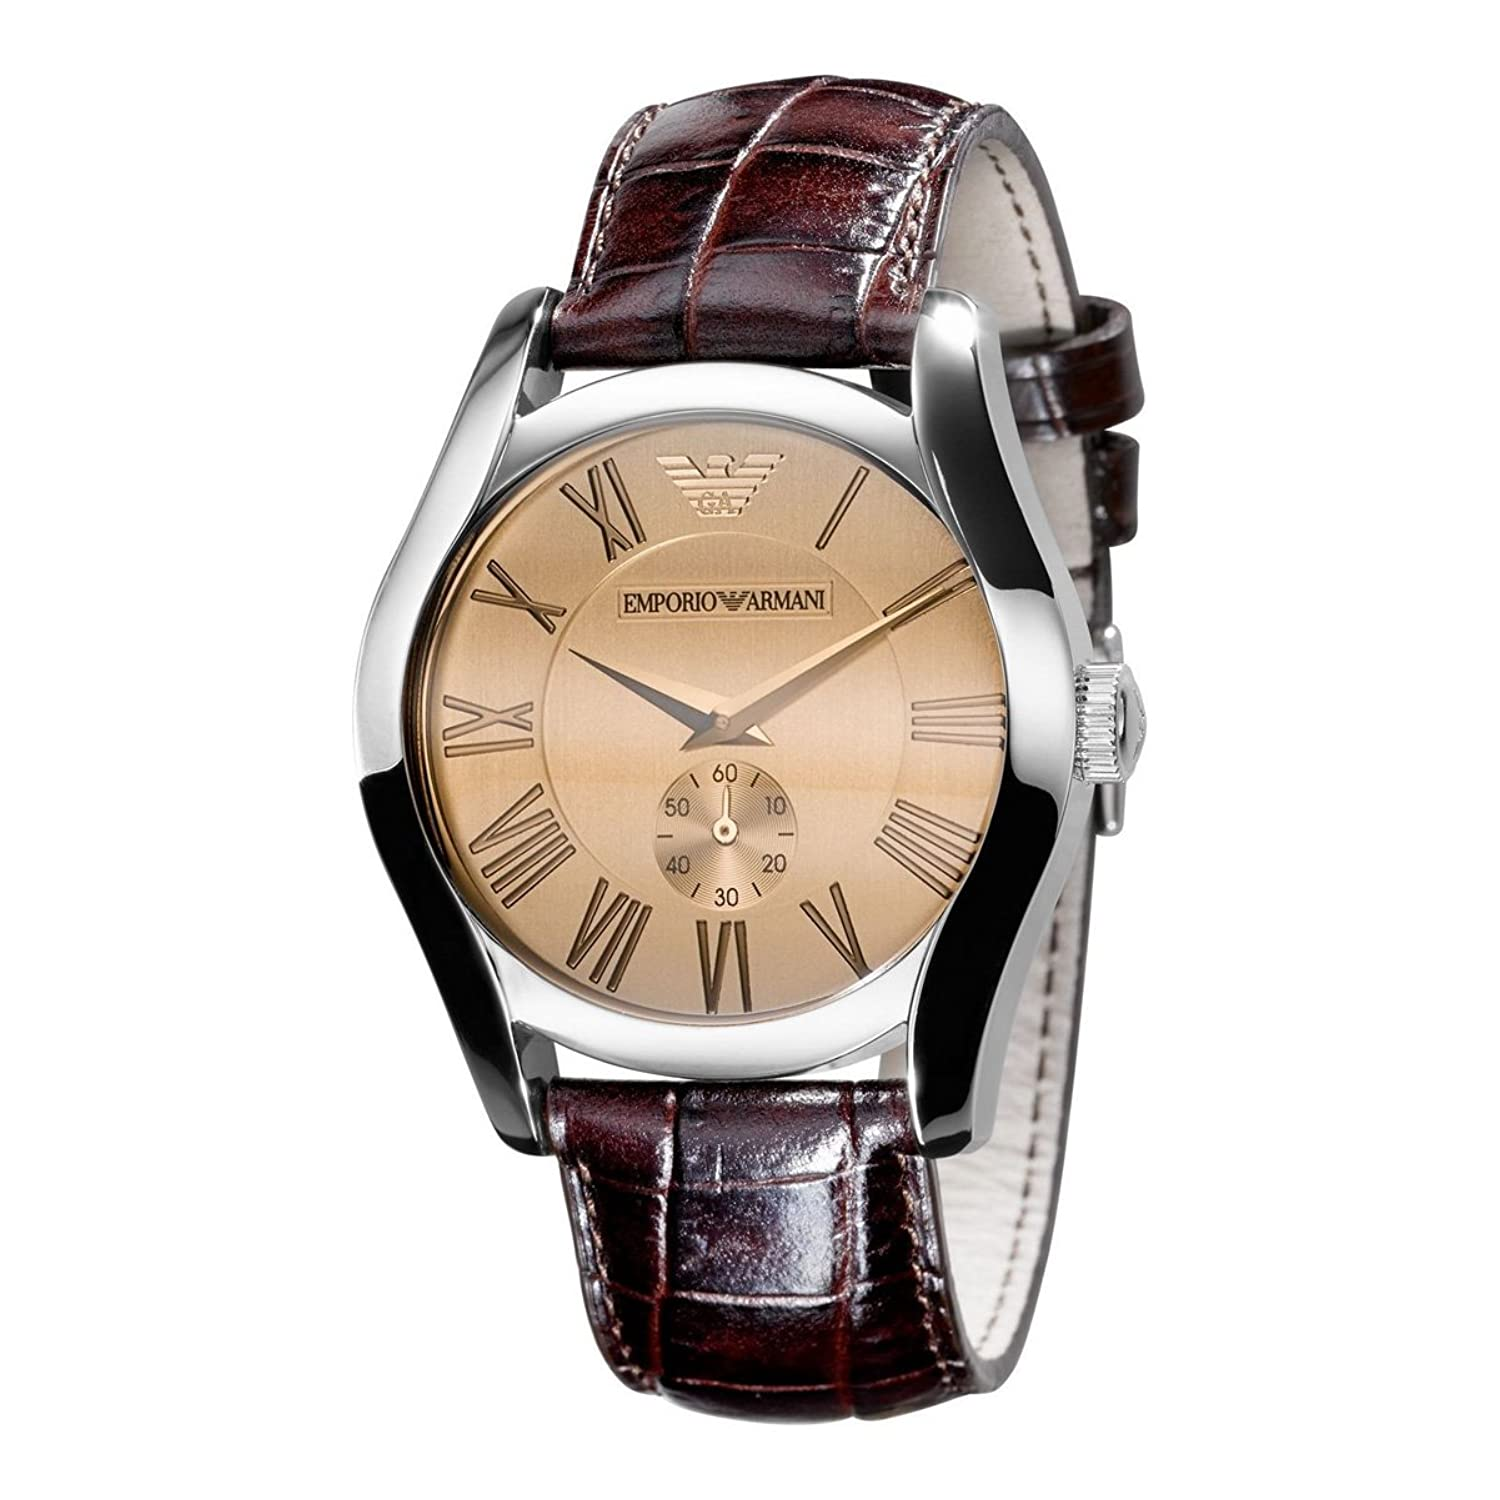 Roman Numeral Dial Watch Roman Numeral Dial Watch